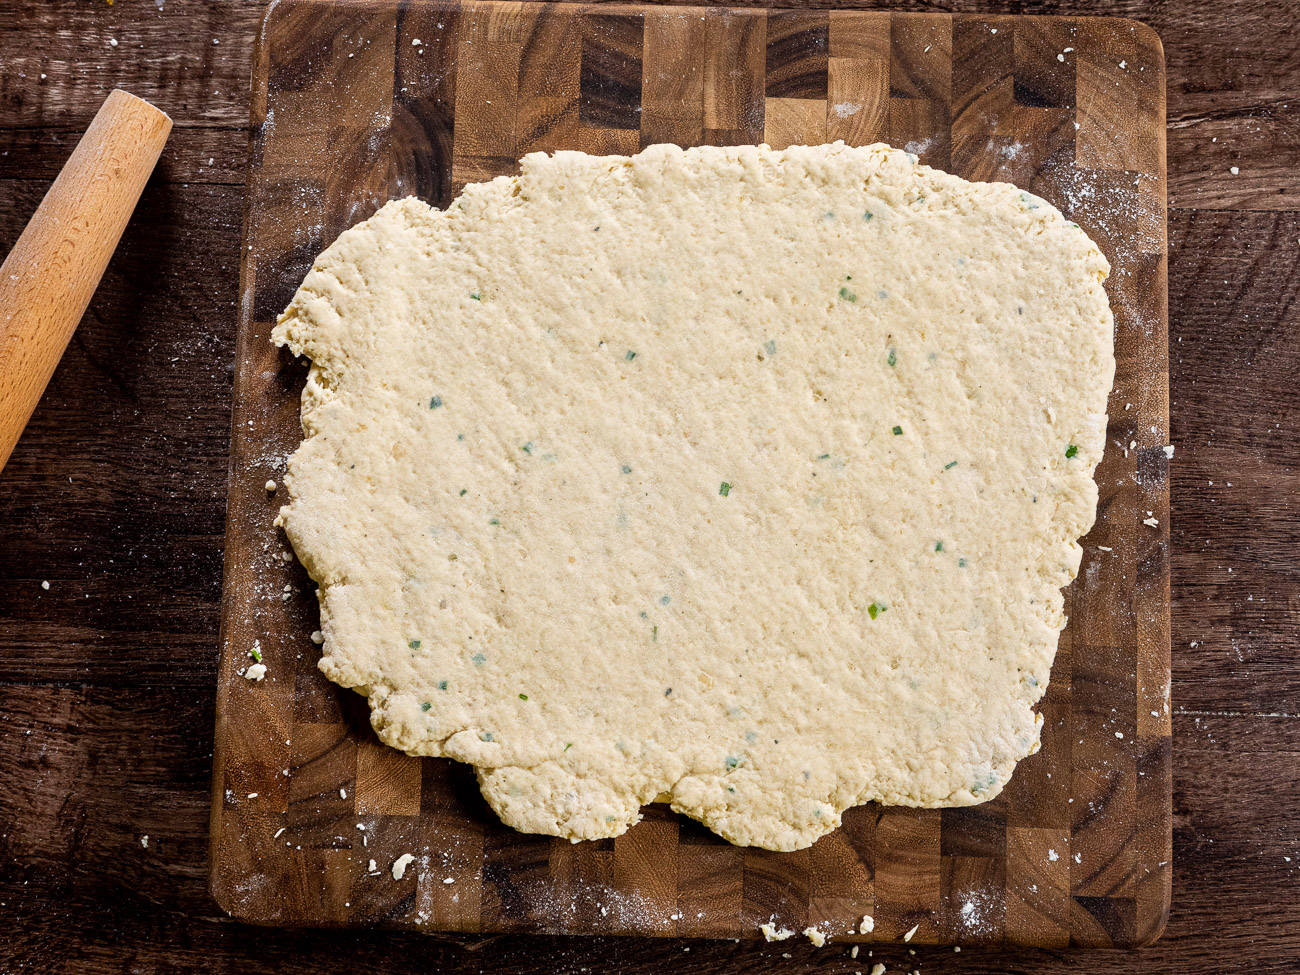 """Flour a work surface and pour dough out. Folded and knead 6 times, using more flour as needed. Roll out dough to 1/2"""" thickness and use a 2-inch round cookie cutter to cut out dough."""